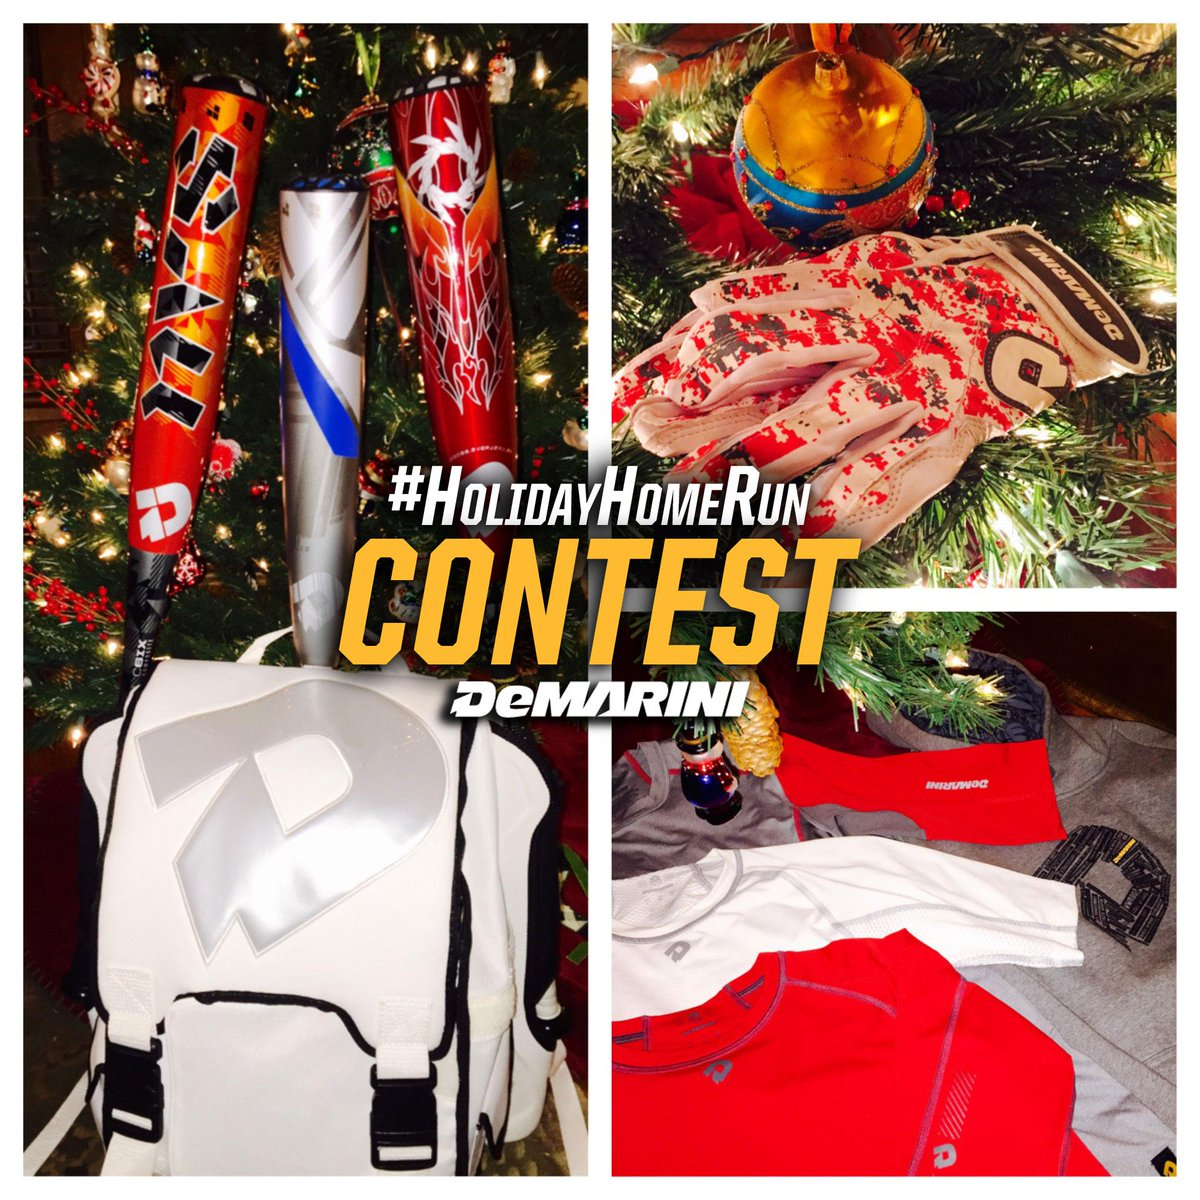 SURPRISE! We're awarding a second winner for this awesome contest. Just follow us & RT to enter! #HolidayHomeRun http://t.co/IU9zj86rrE